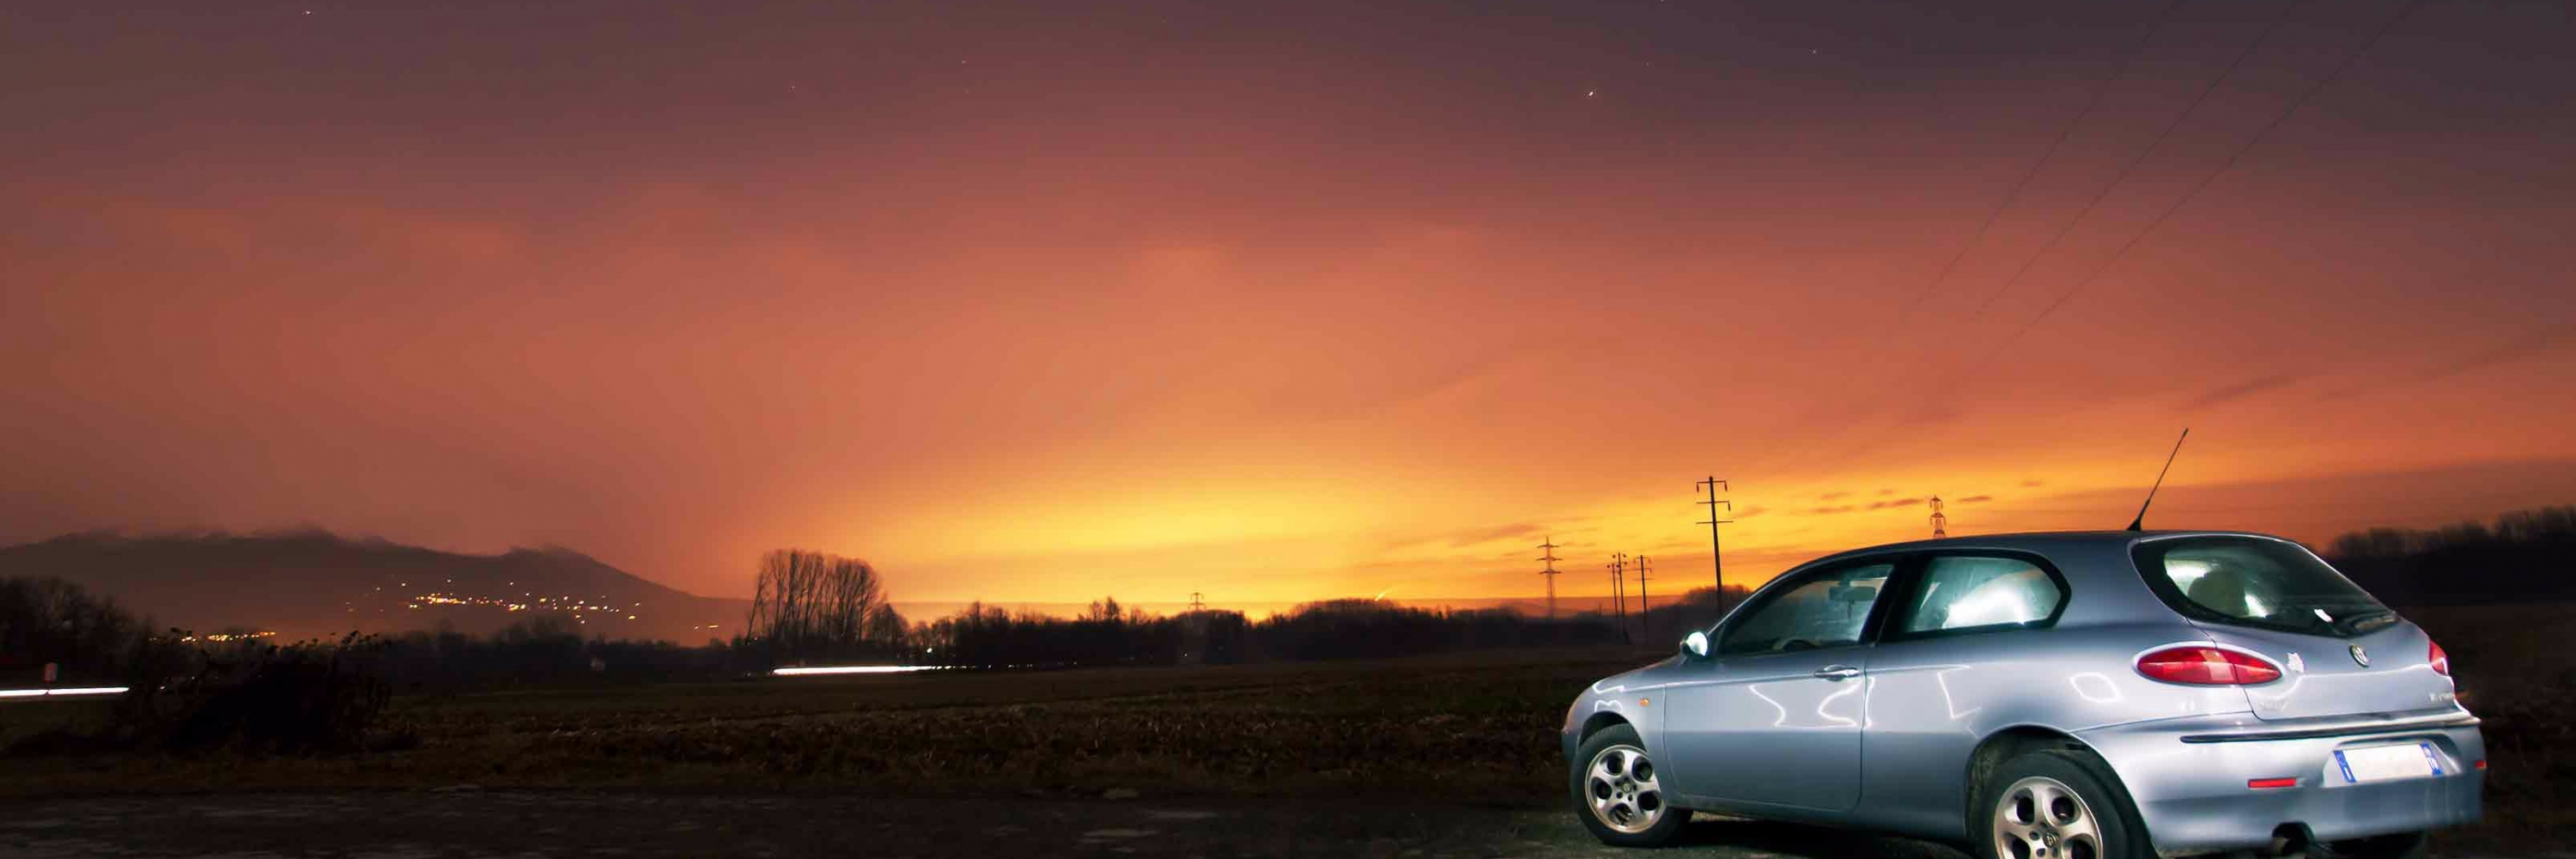 A car, at a remote location as the sun sets over the hills, for which P F Spare Insurance Brokers can arrange car insurance